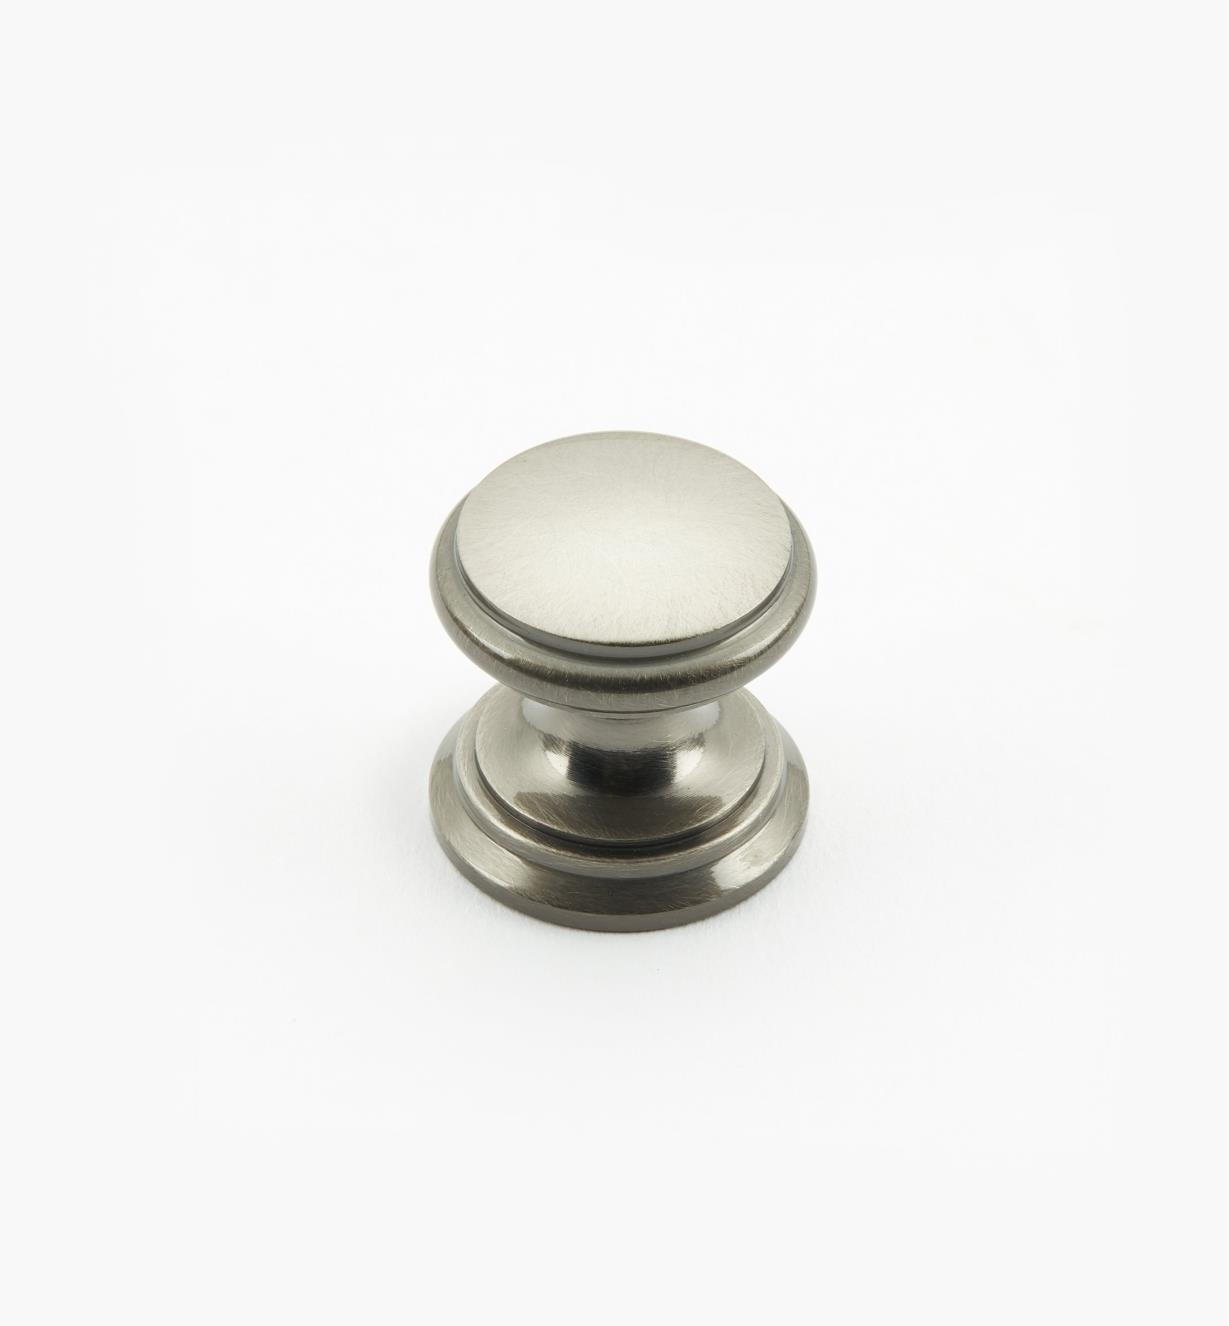 "02W1437 - Antique Nickel Suite - 3/4"" x 3/4"" Round Brass Knob"